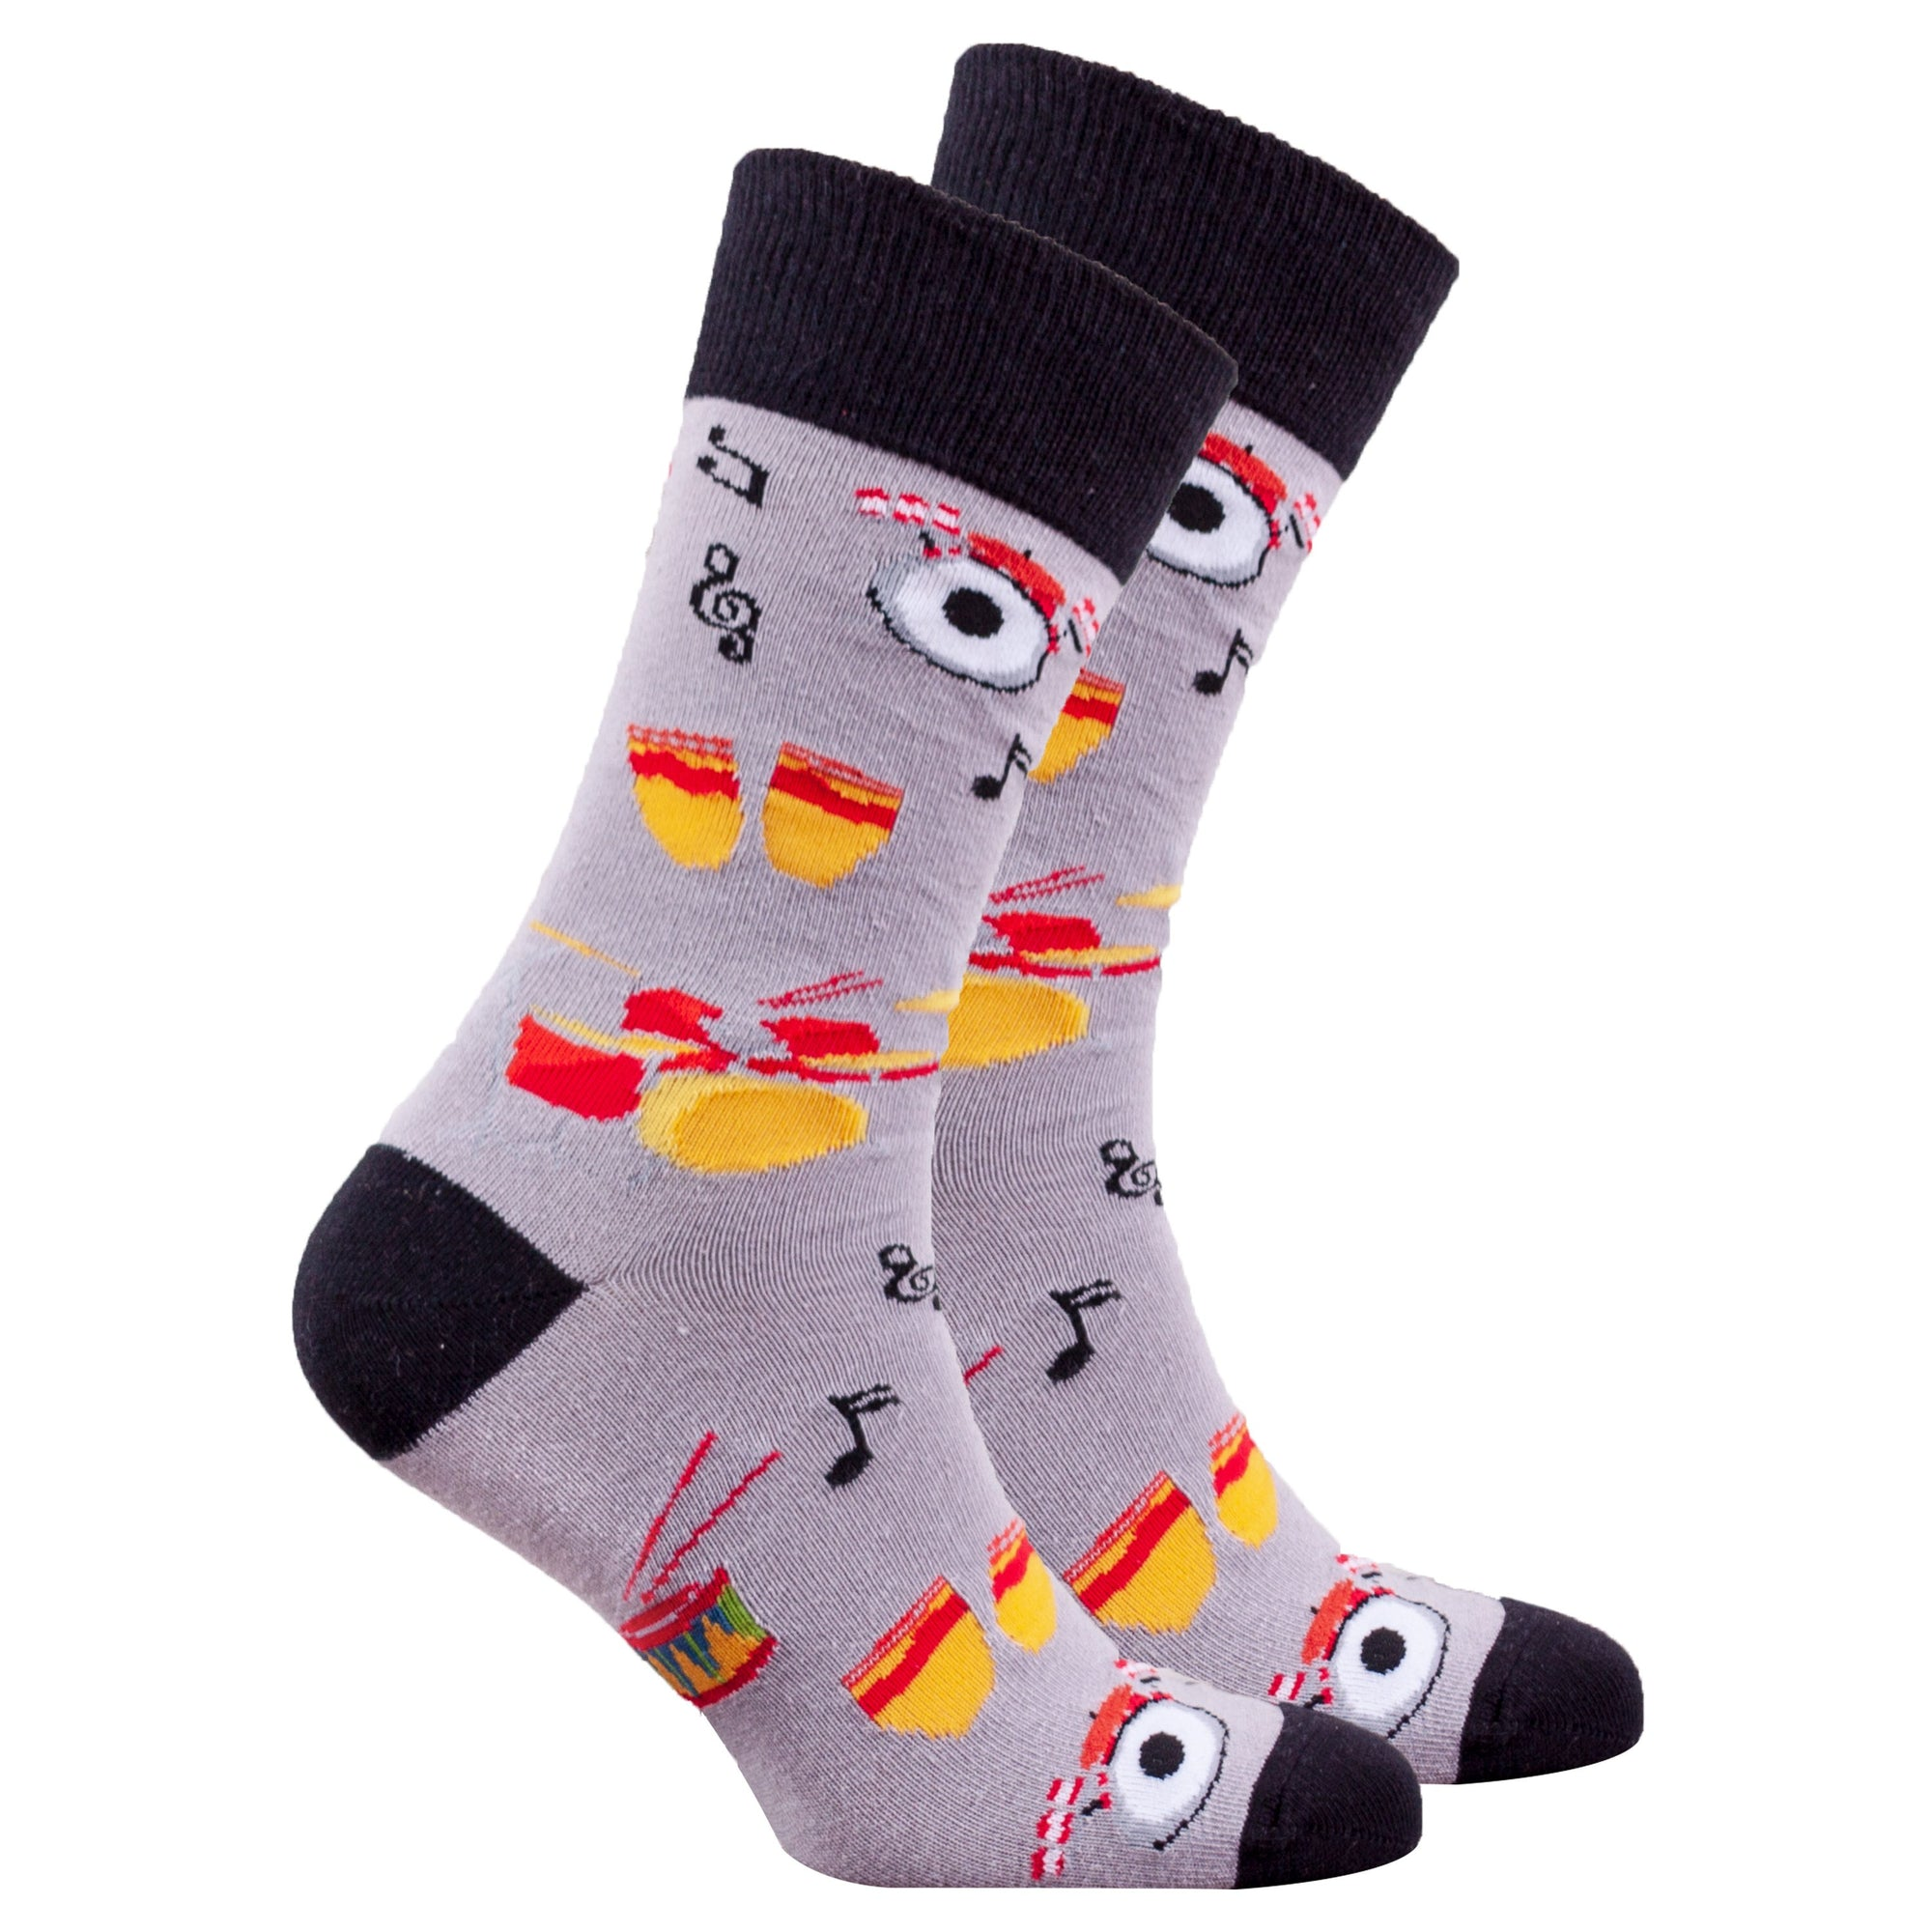 Men's Drums Socks